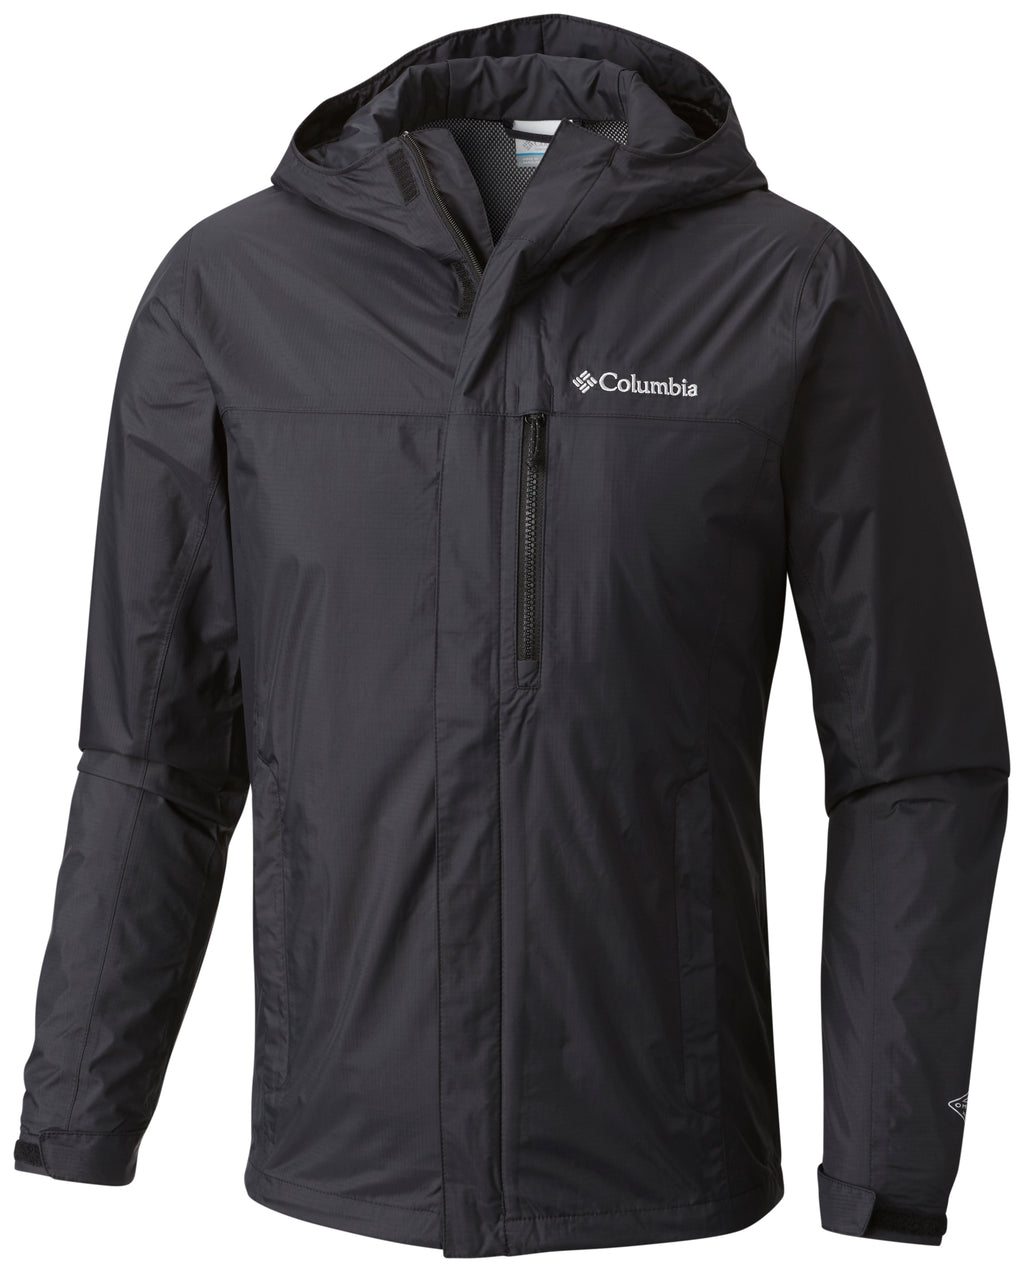 Columbia Men's Pouring Adventure II promotional Jacket